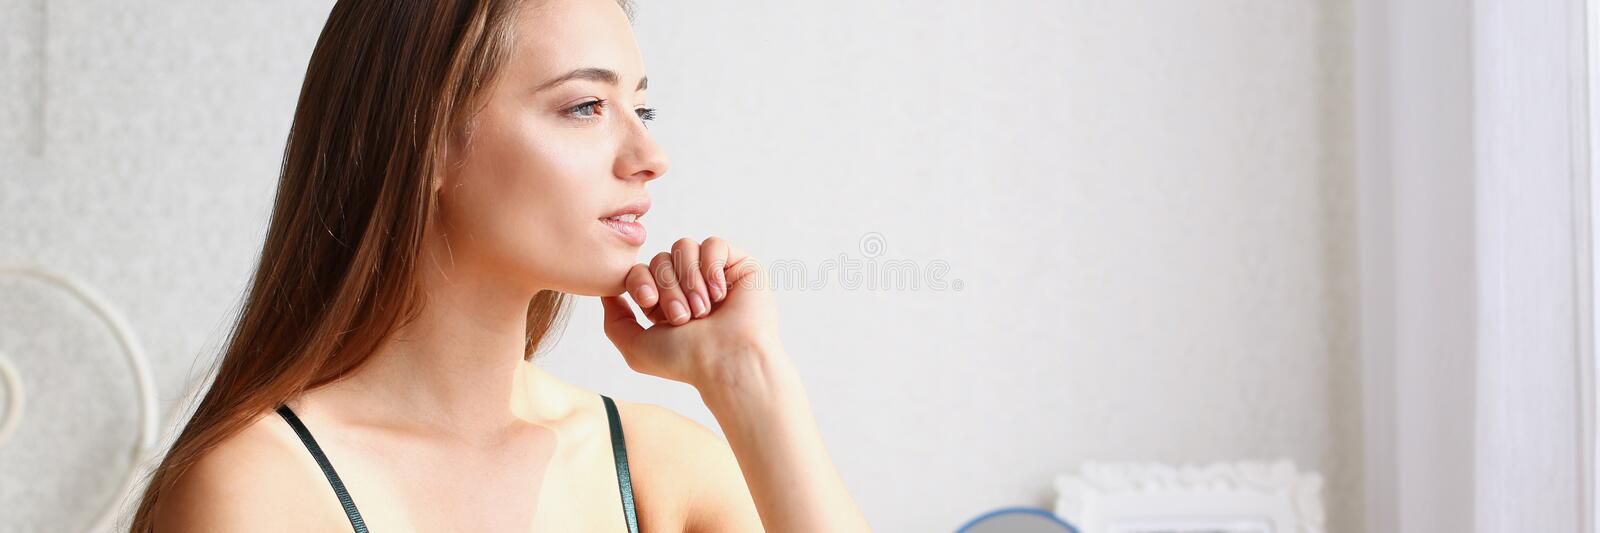 Young beautiful blonde smiling woman portrait royalty free stock images